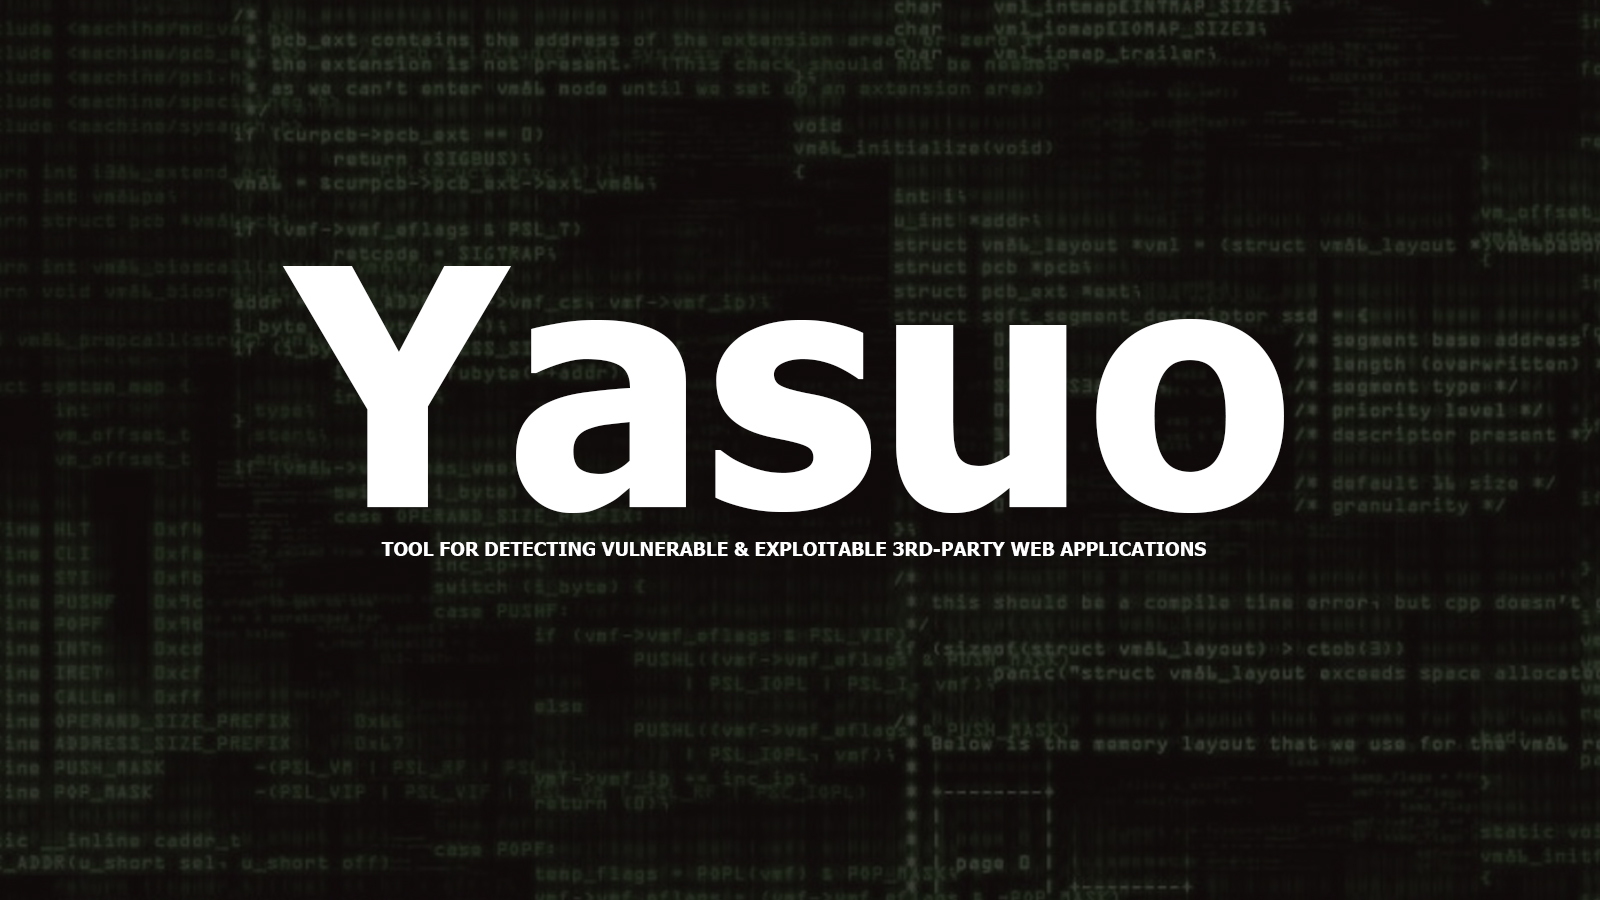 Yasuo - Tool For Detecting Vulnerable & Exploitable 3rd-party Web Applications